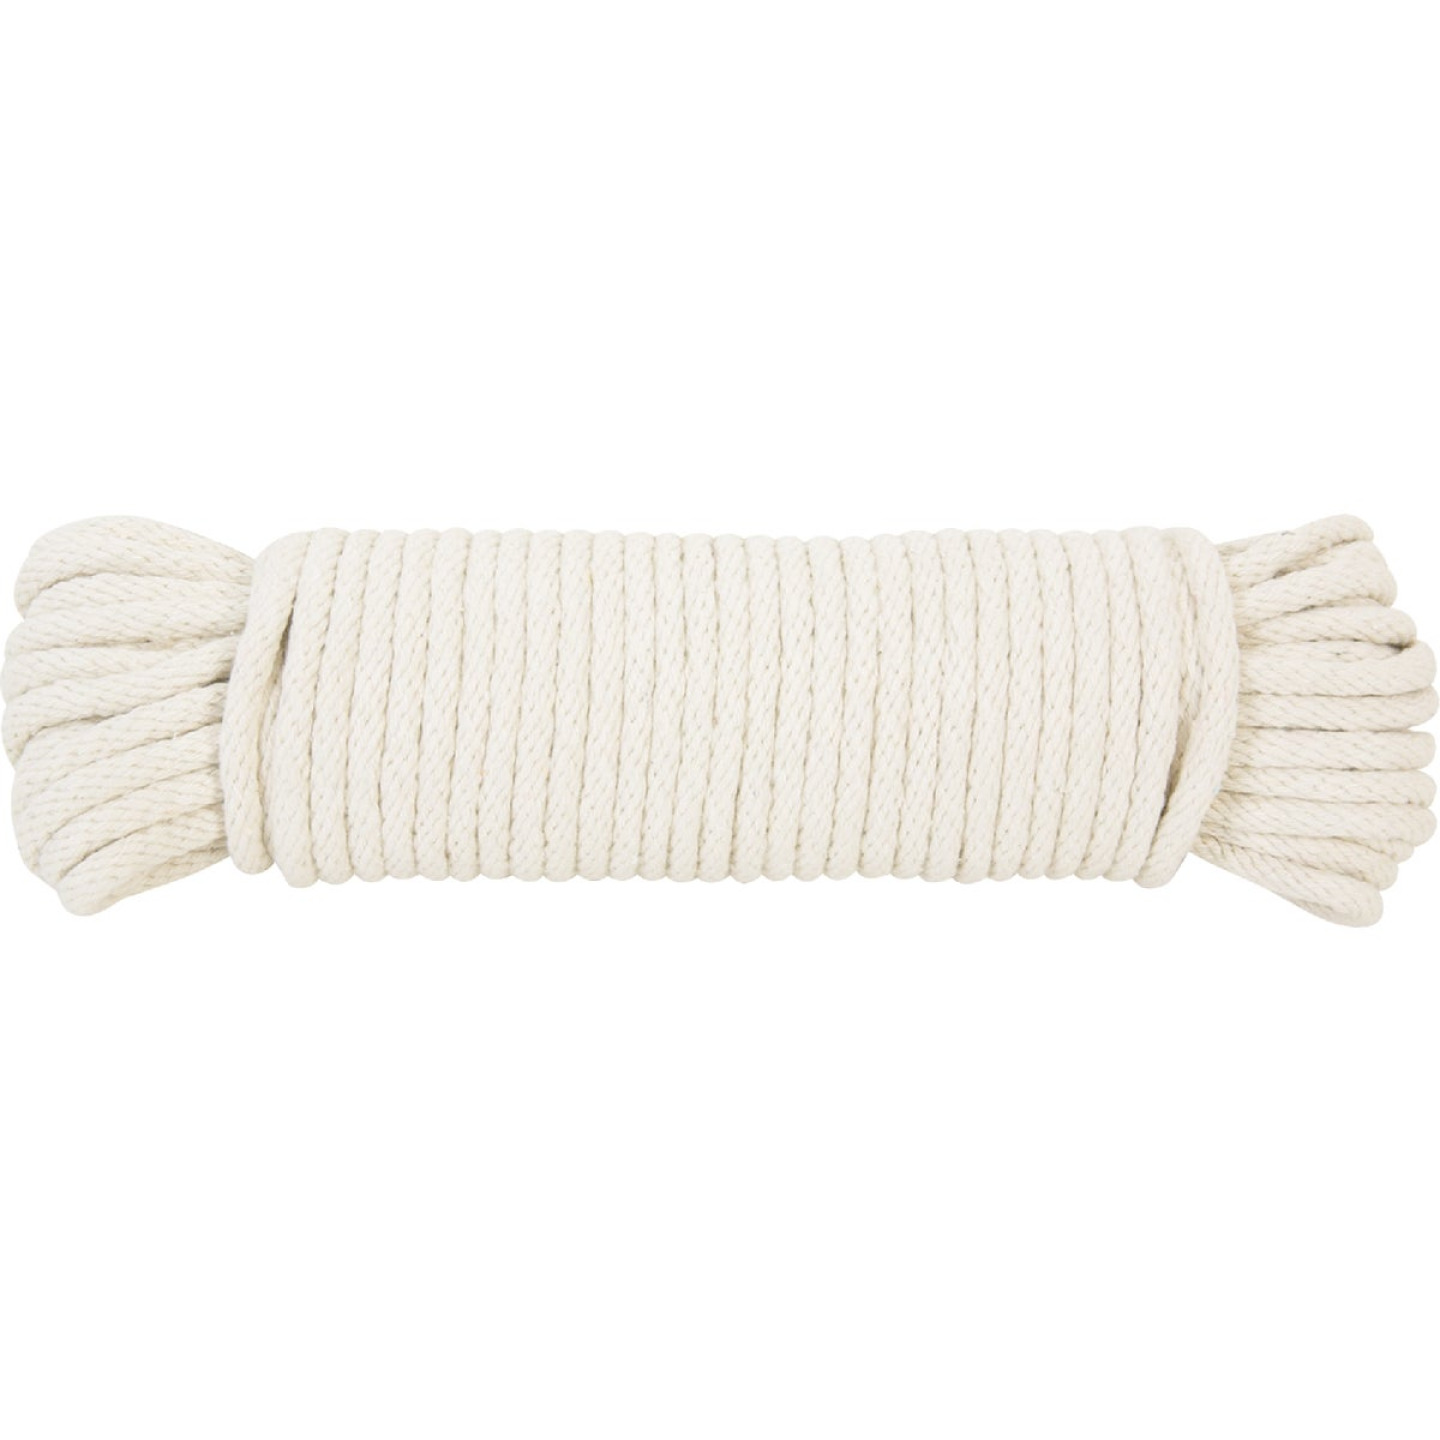 Do it 5/16 In. x 100 Ft. White Solid Braided Cotton Sash Cord Image 2